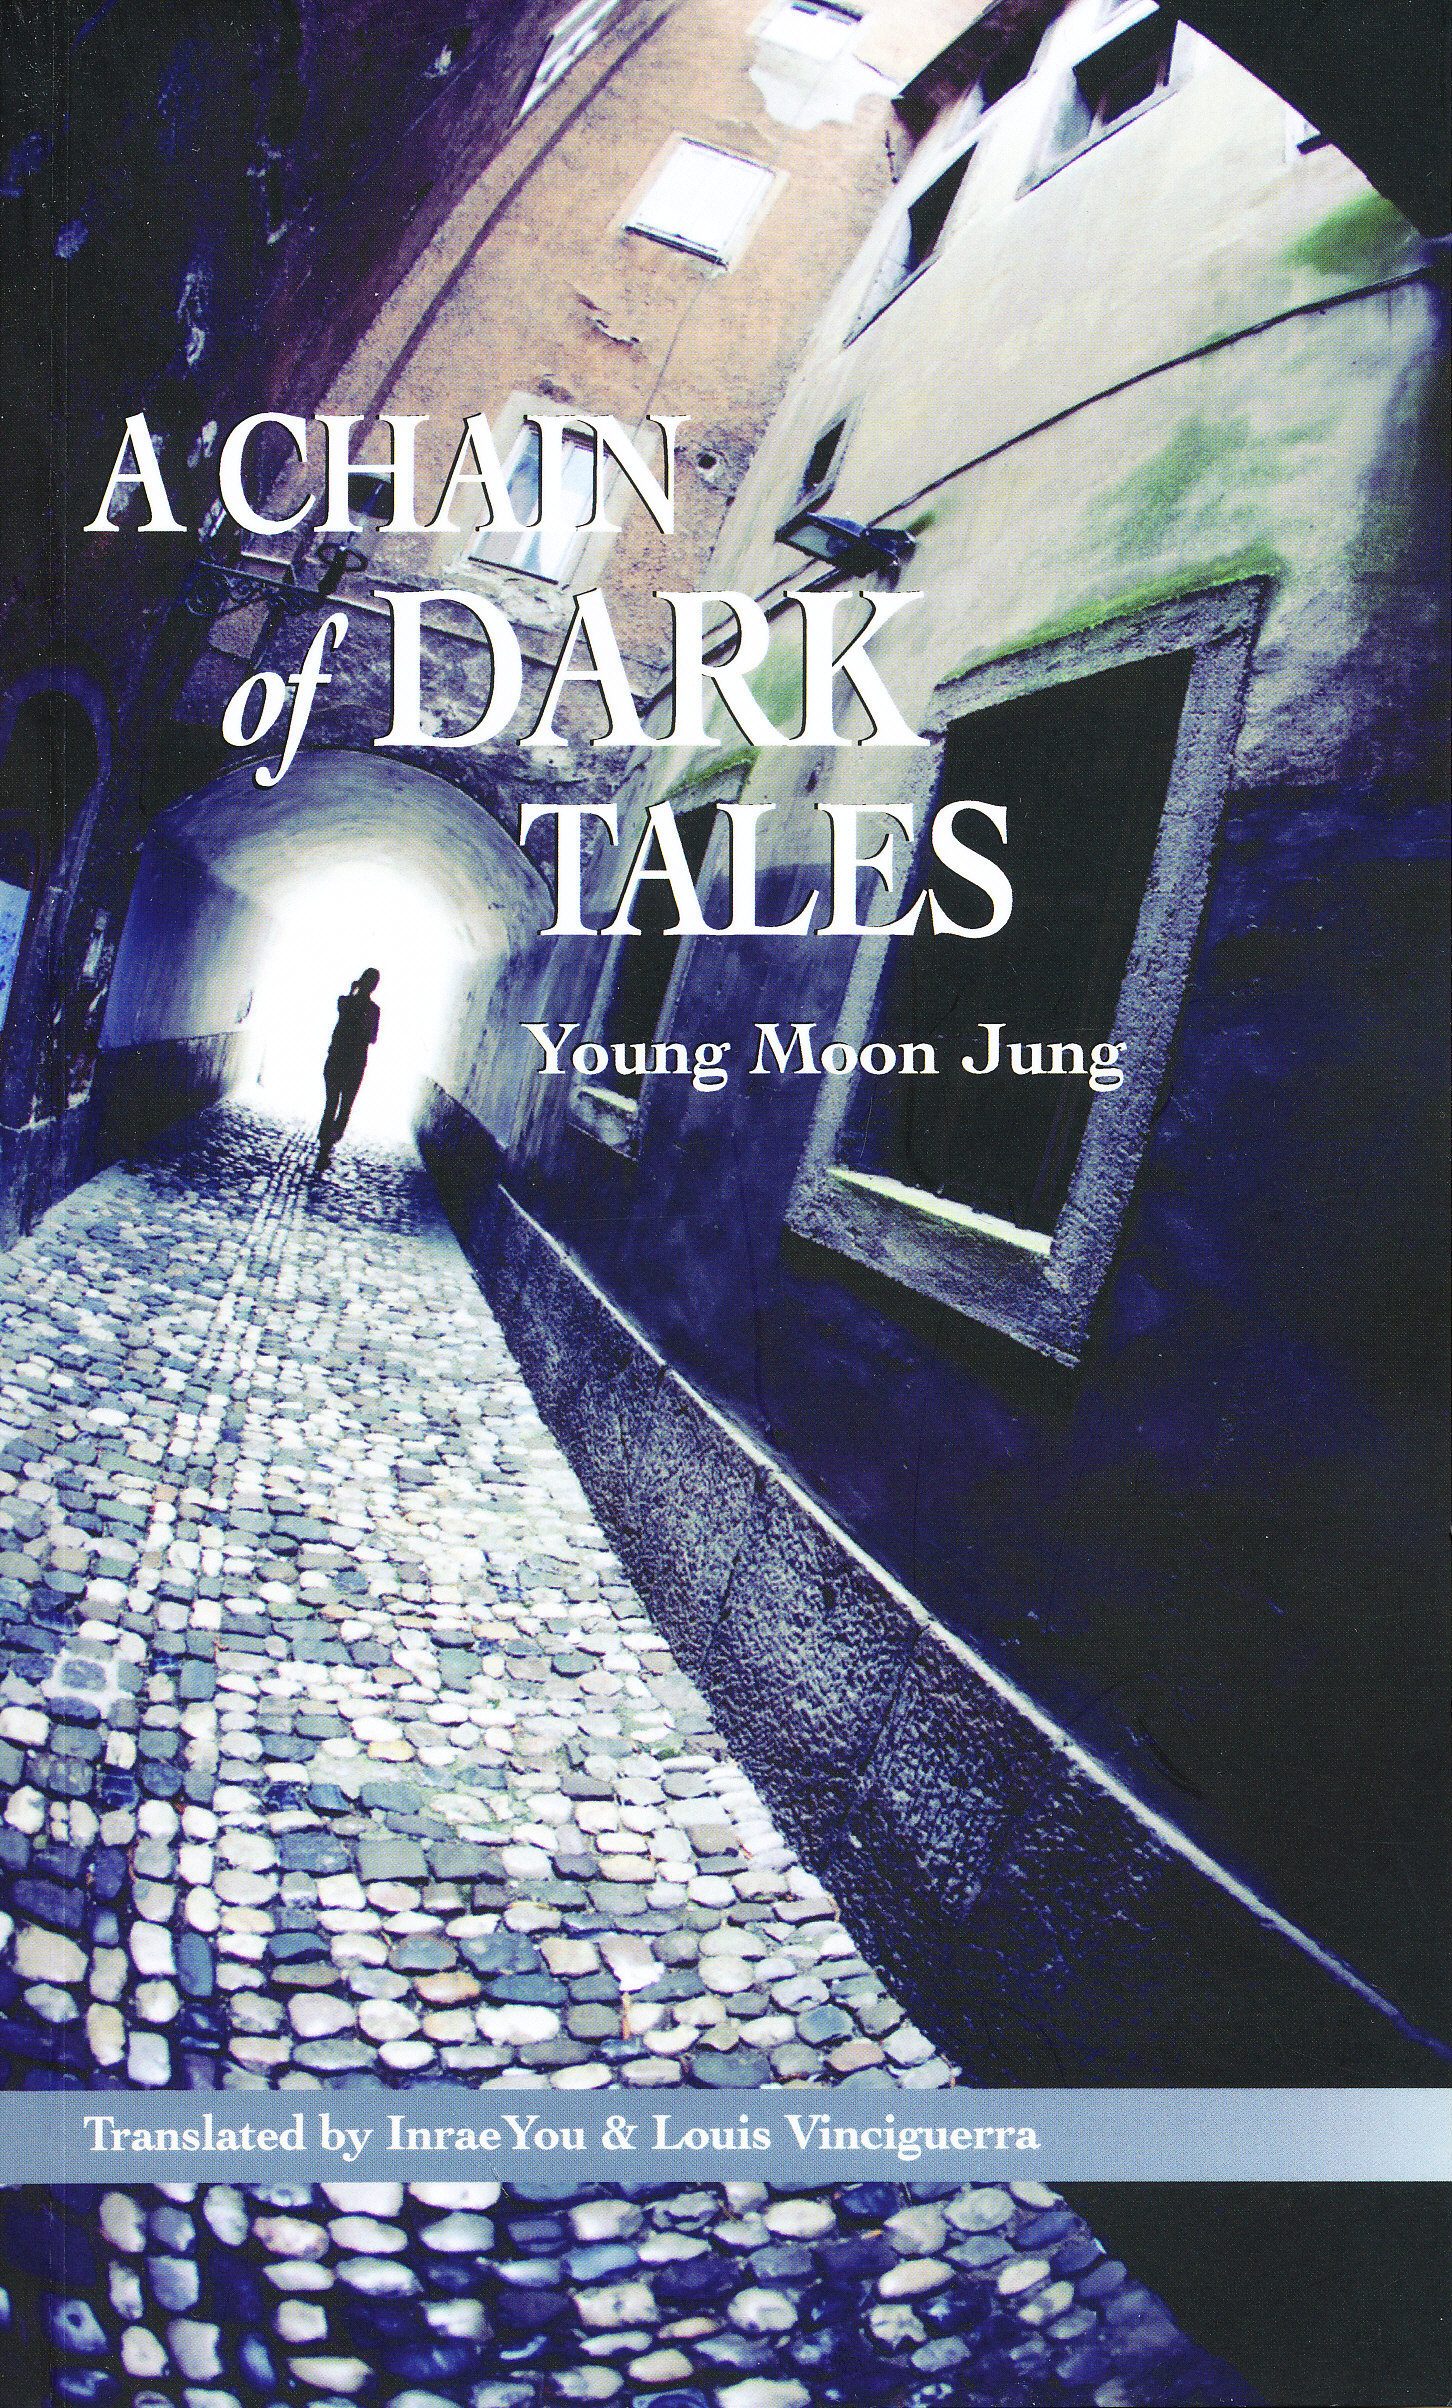 A Chain of Dark Tales